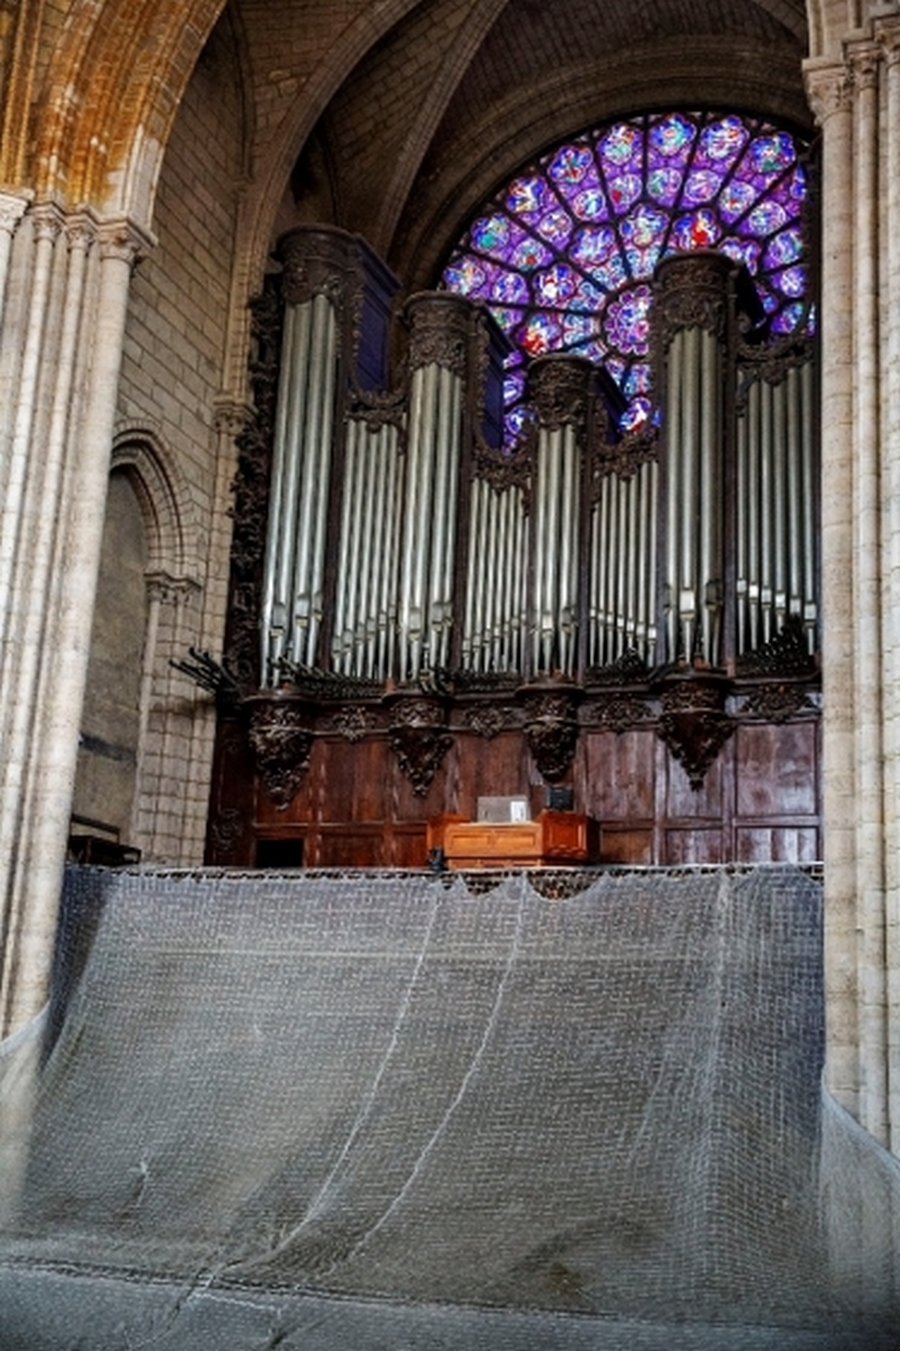 Le grand orgue et la rosace ouest, intacts